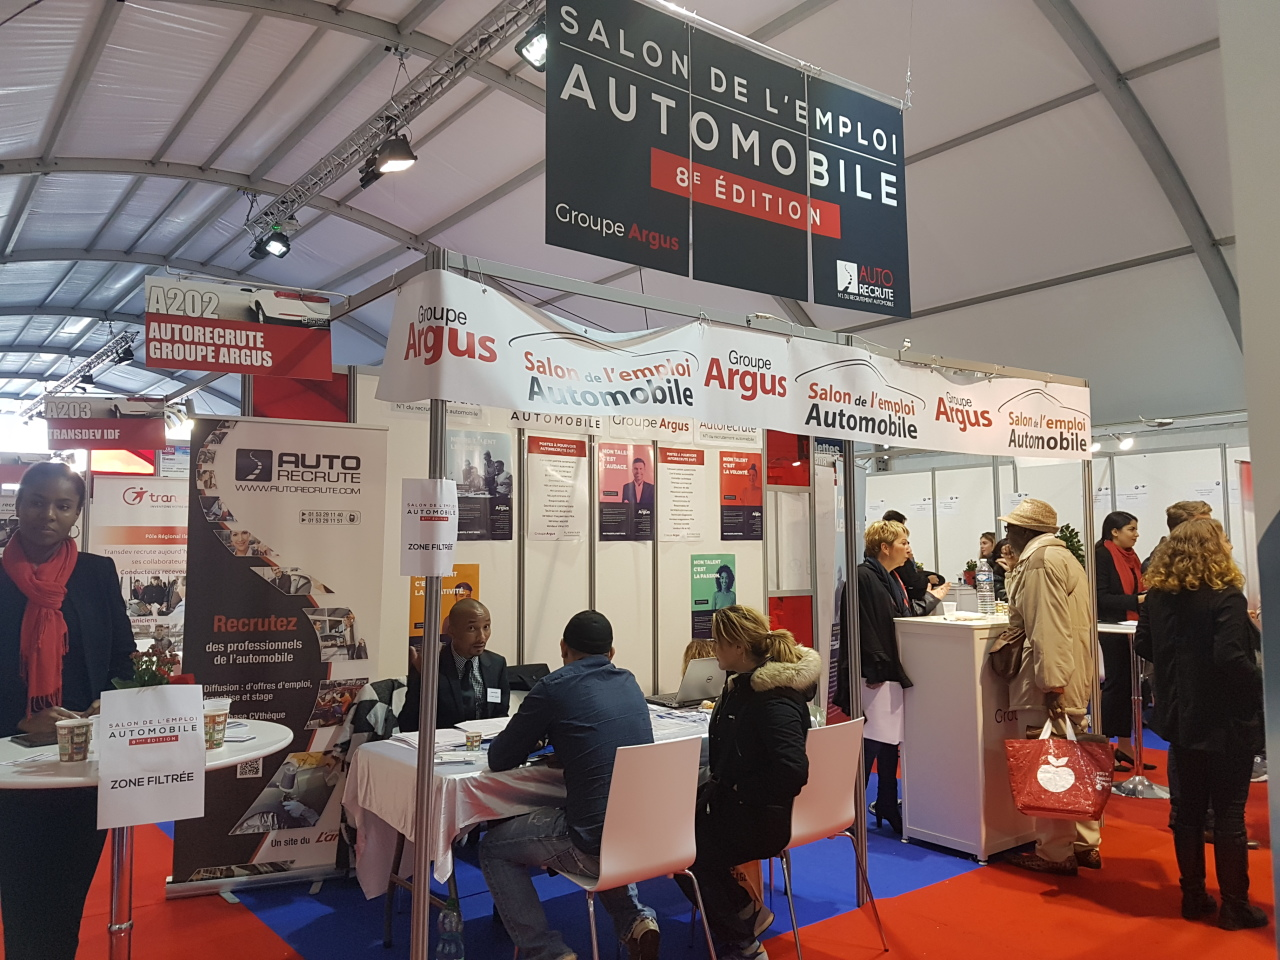 Salon rencontre